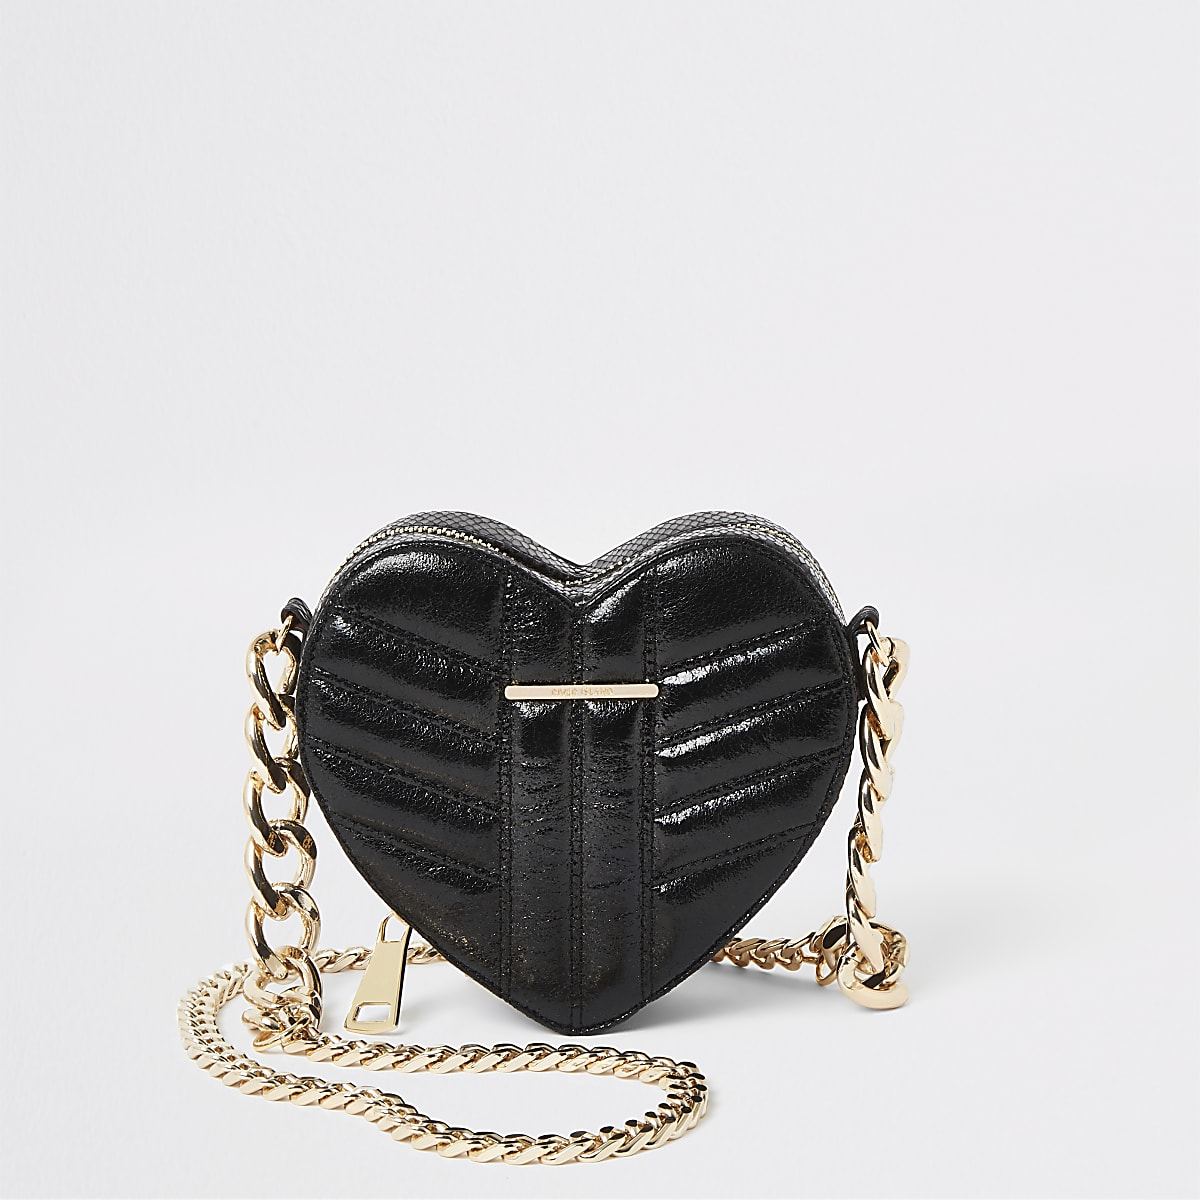 Black quilted heart shape cross body bag